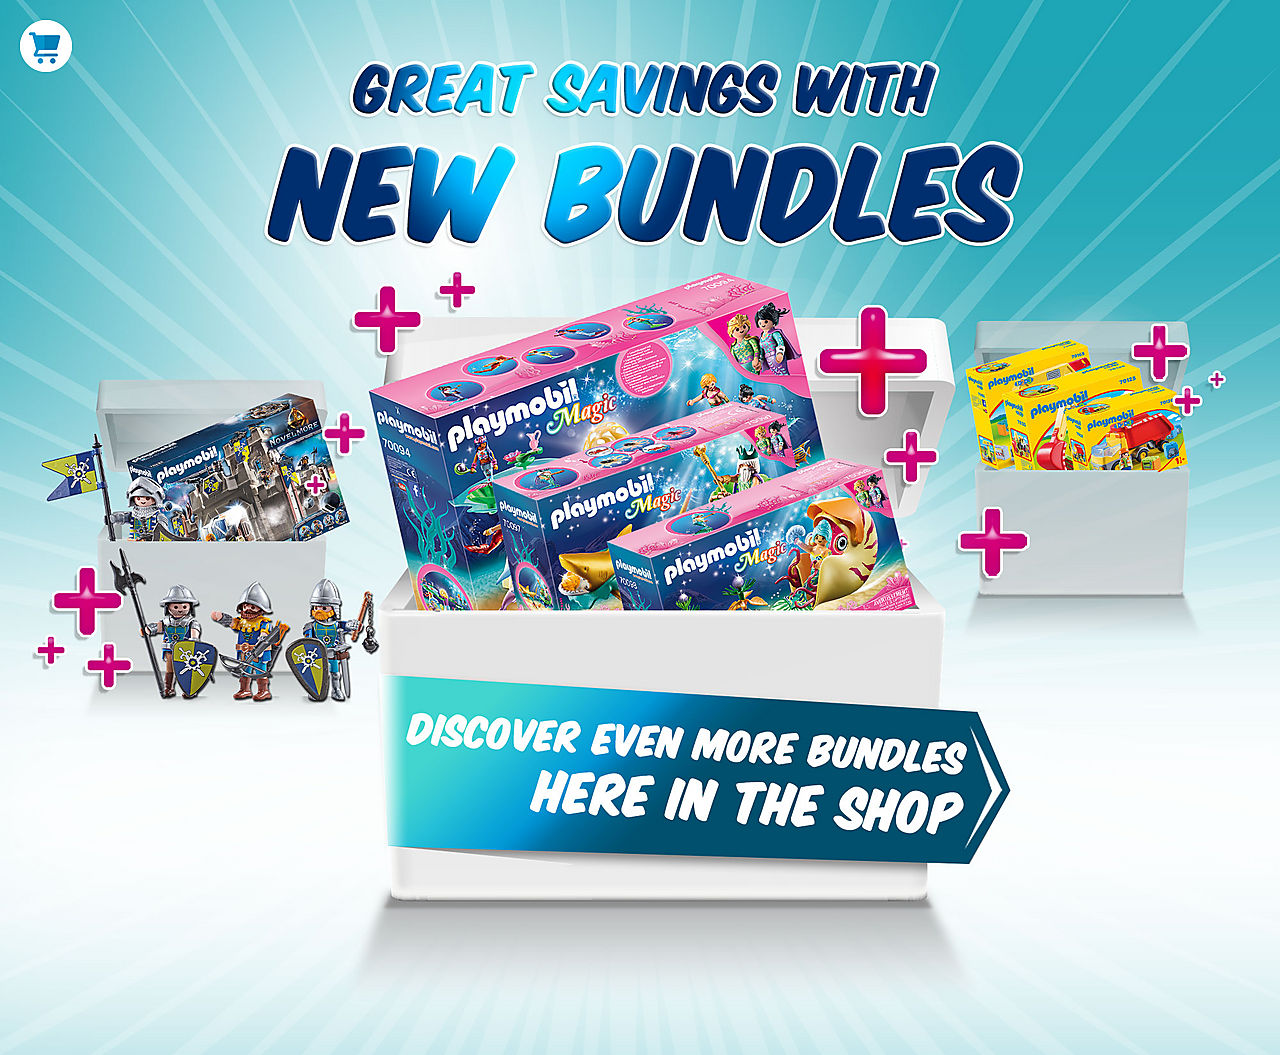 Discover and save on many bundles like the Mermaids Bundle which includes the items 70094 and 70097 and 70098 for only $74.99 instead $106.97